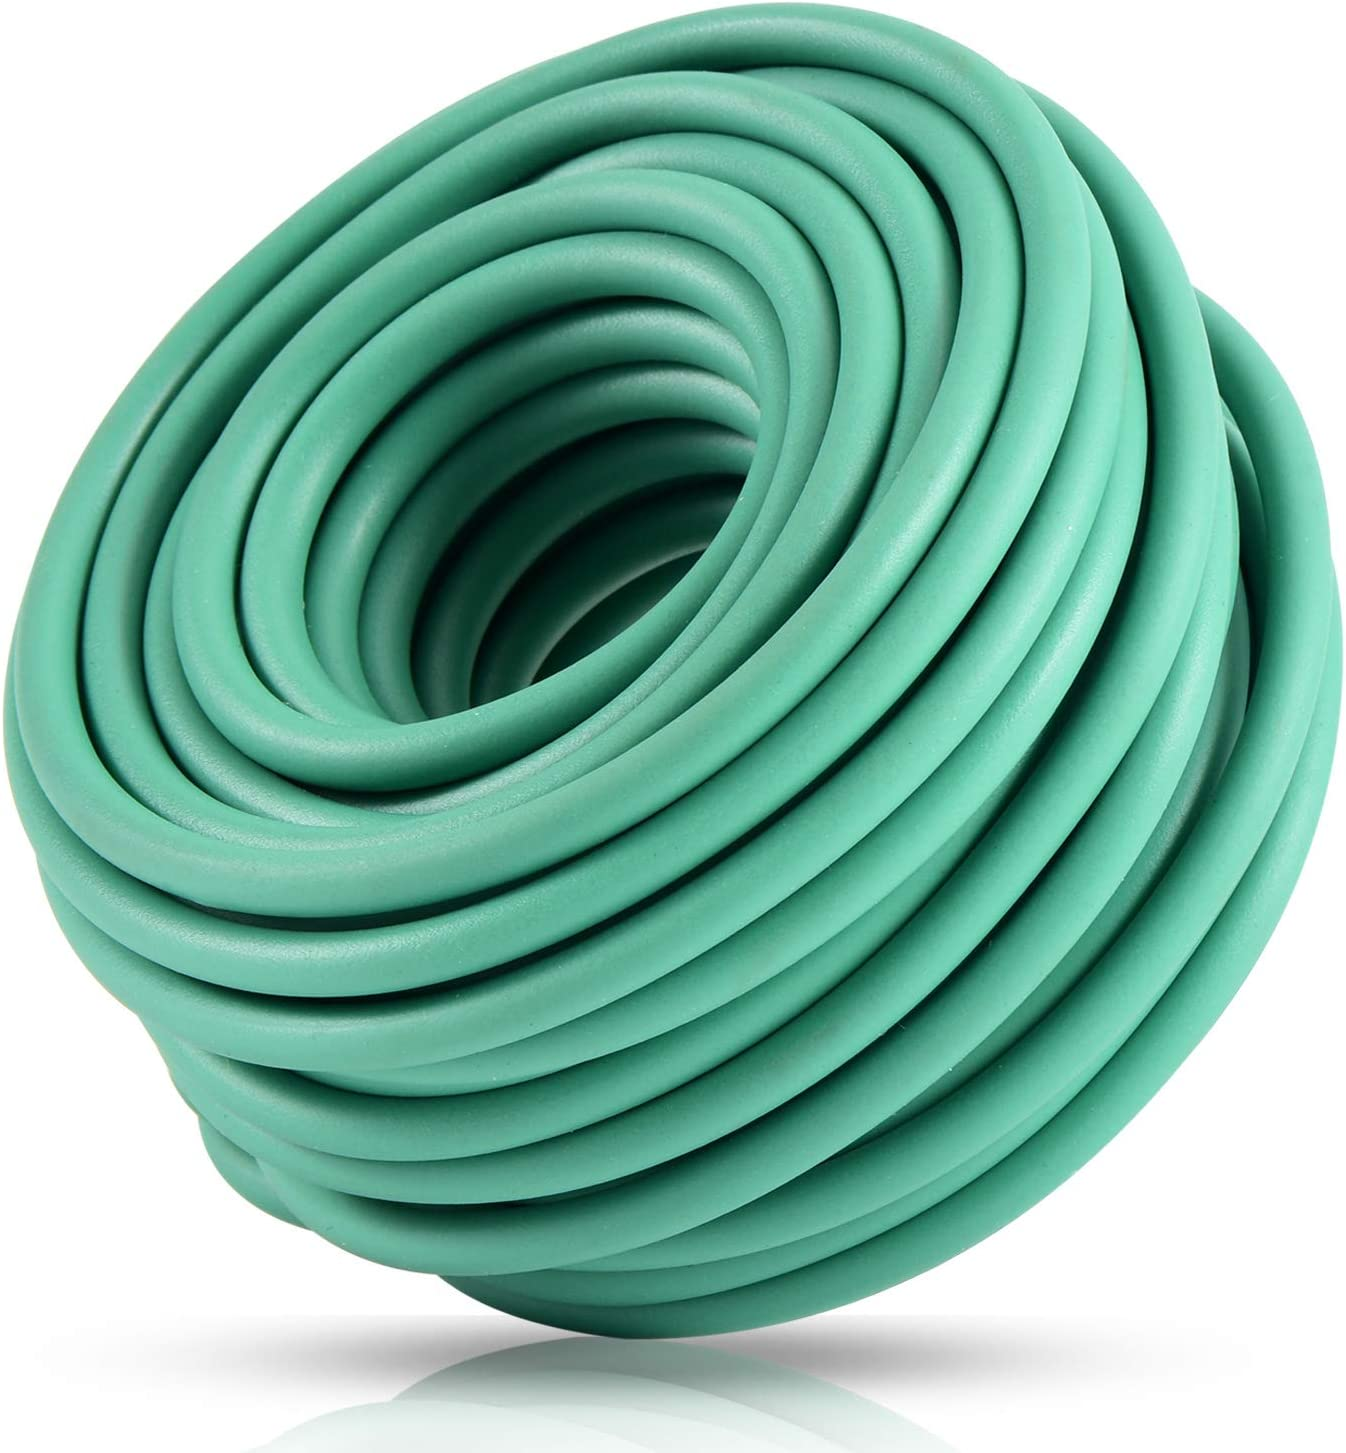 YDSL Soft Plant Tie, Garden Wire Tie for Plants Heavy Duty Reusable Plant Twist Ties for Gardening Home Office (Green, 32.8 feet)